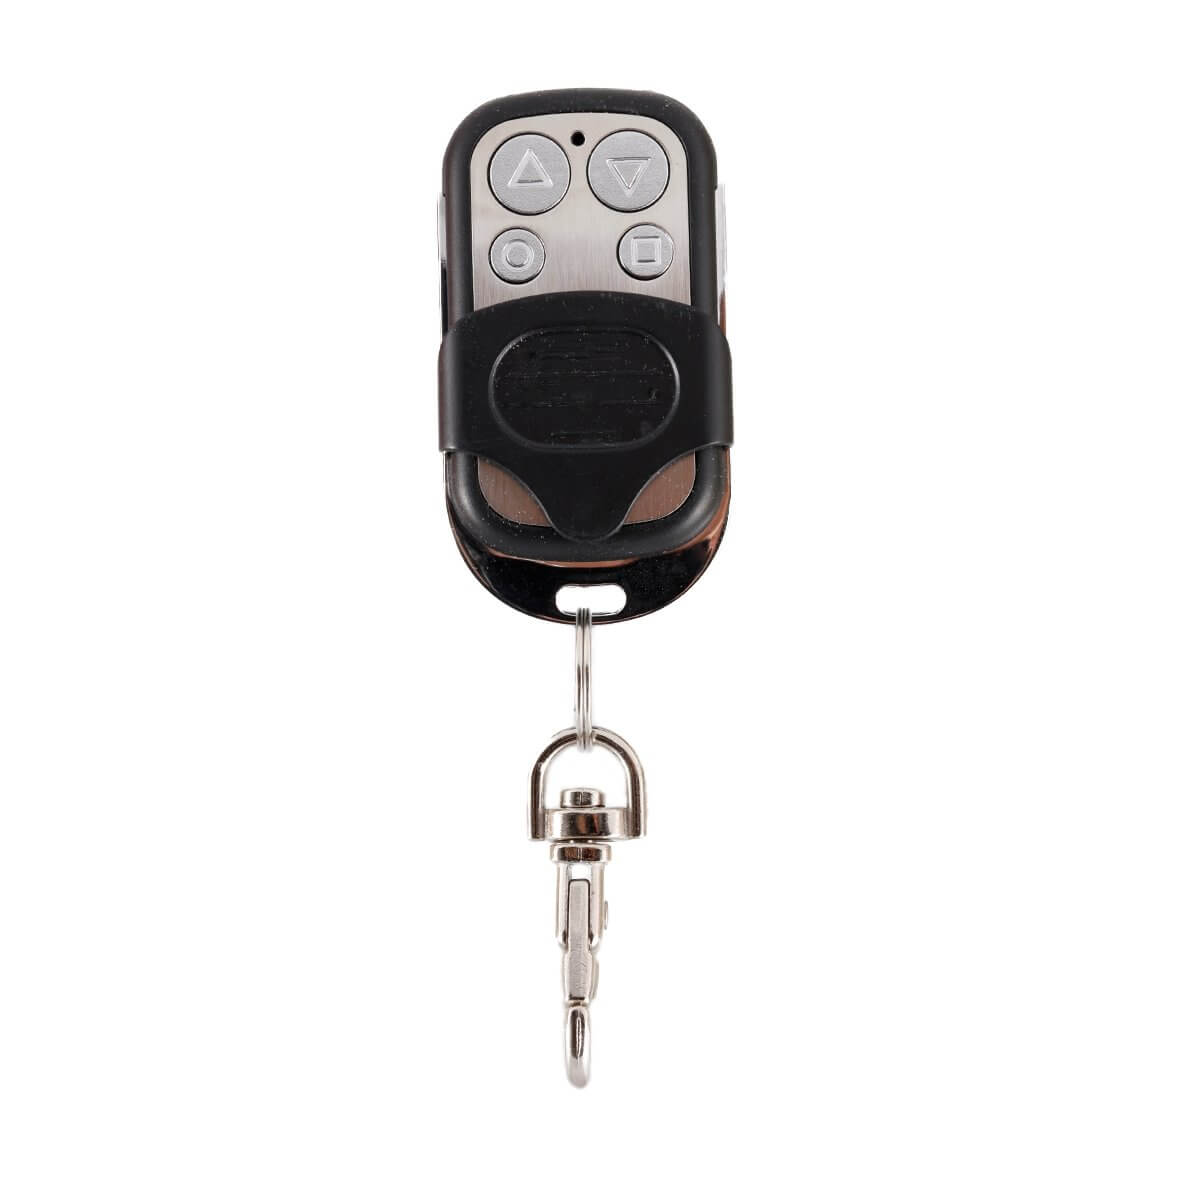 NVM 433MHz | GATE AND GARAGE DOOR REMOTE CONTROL